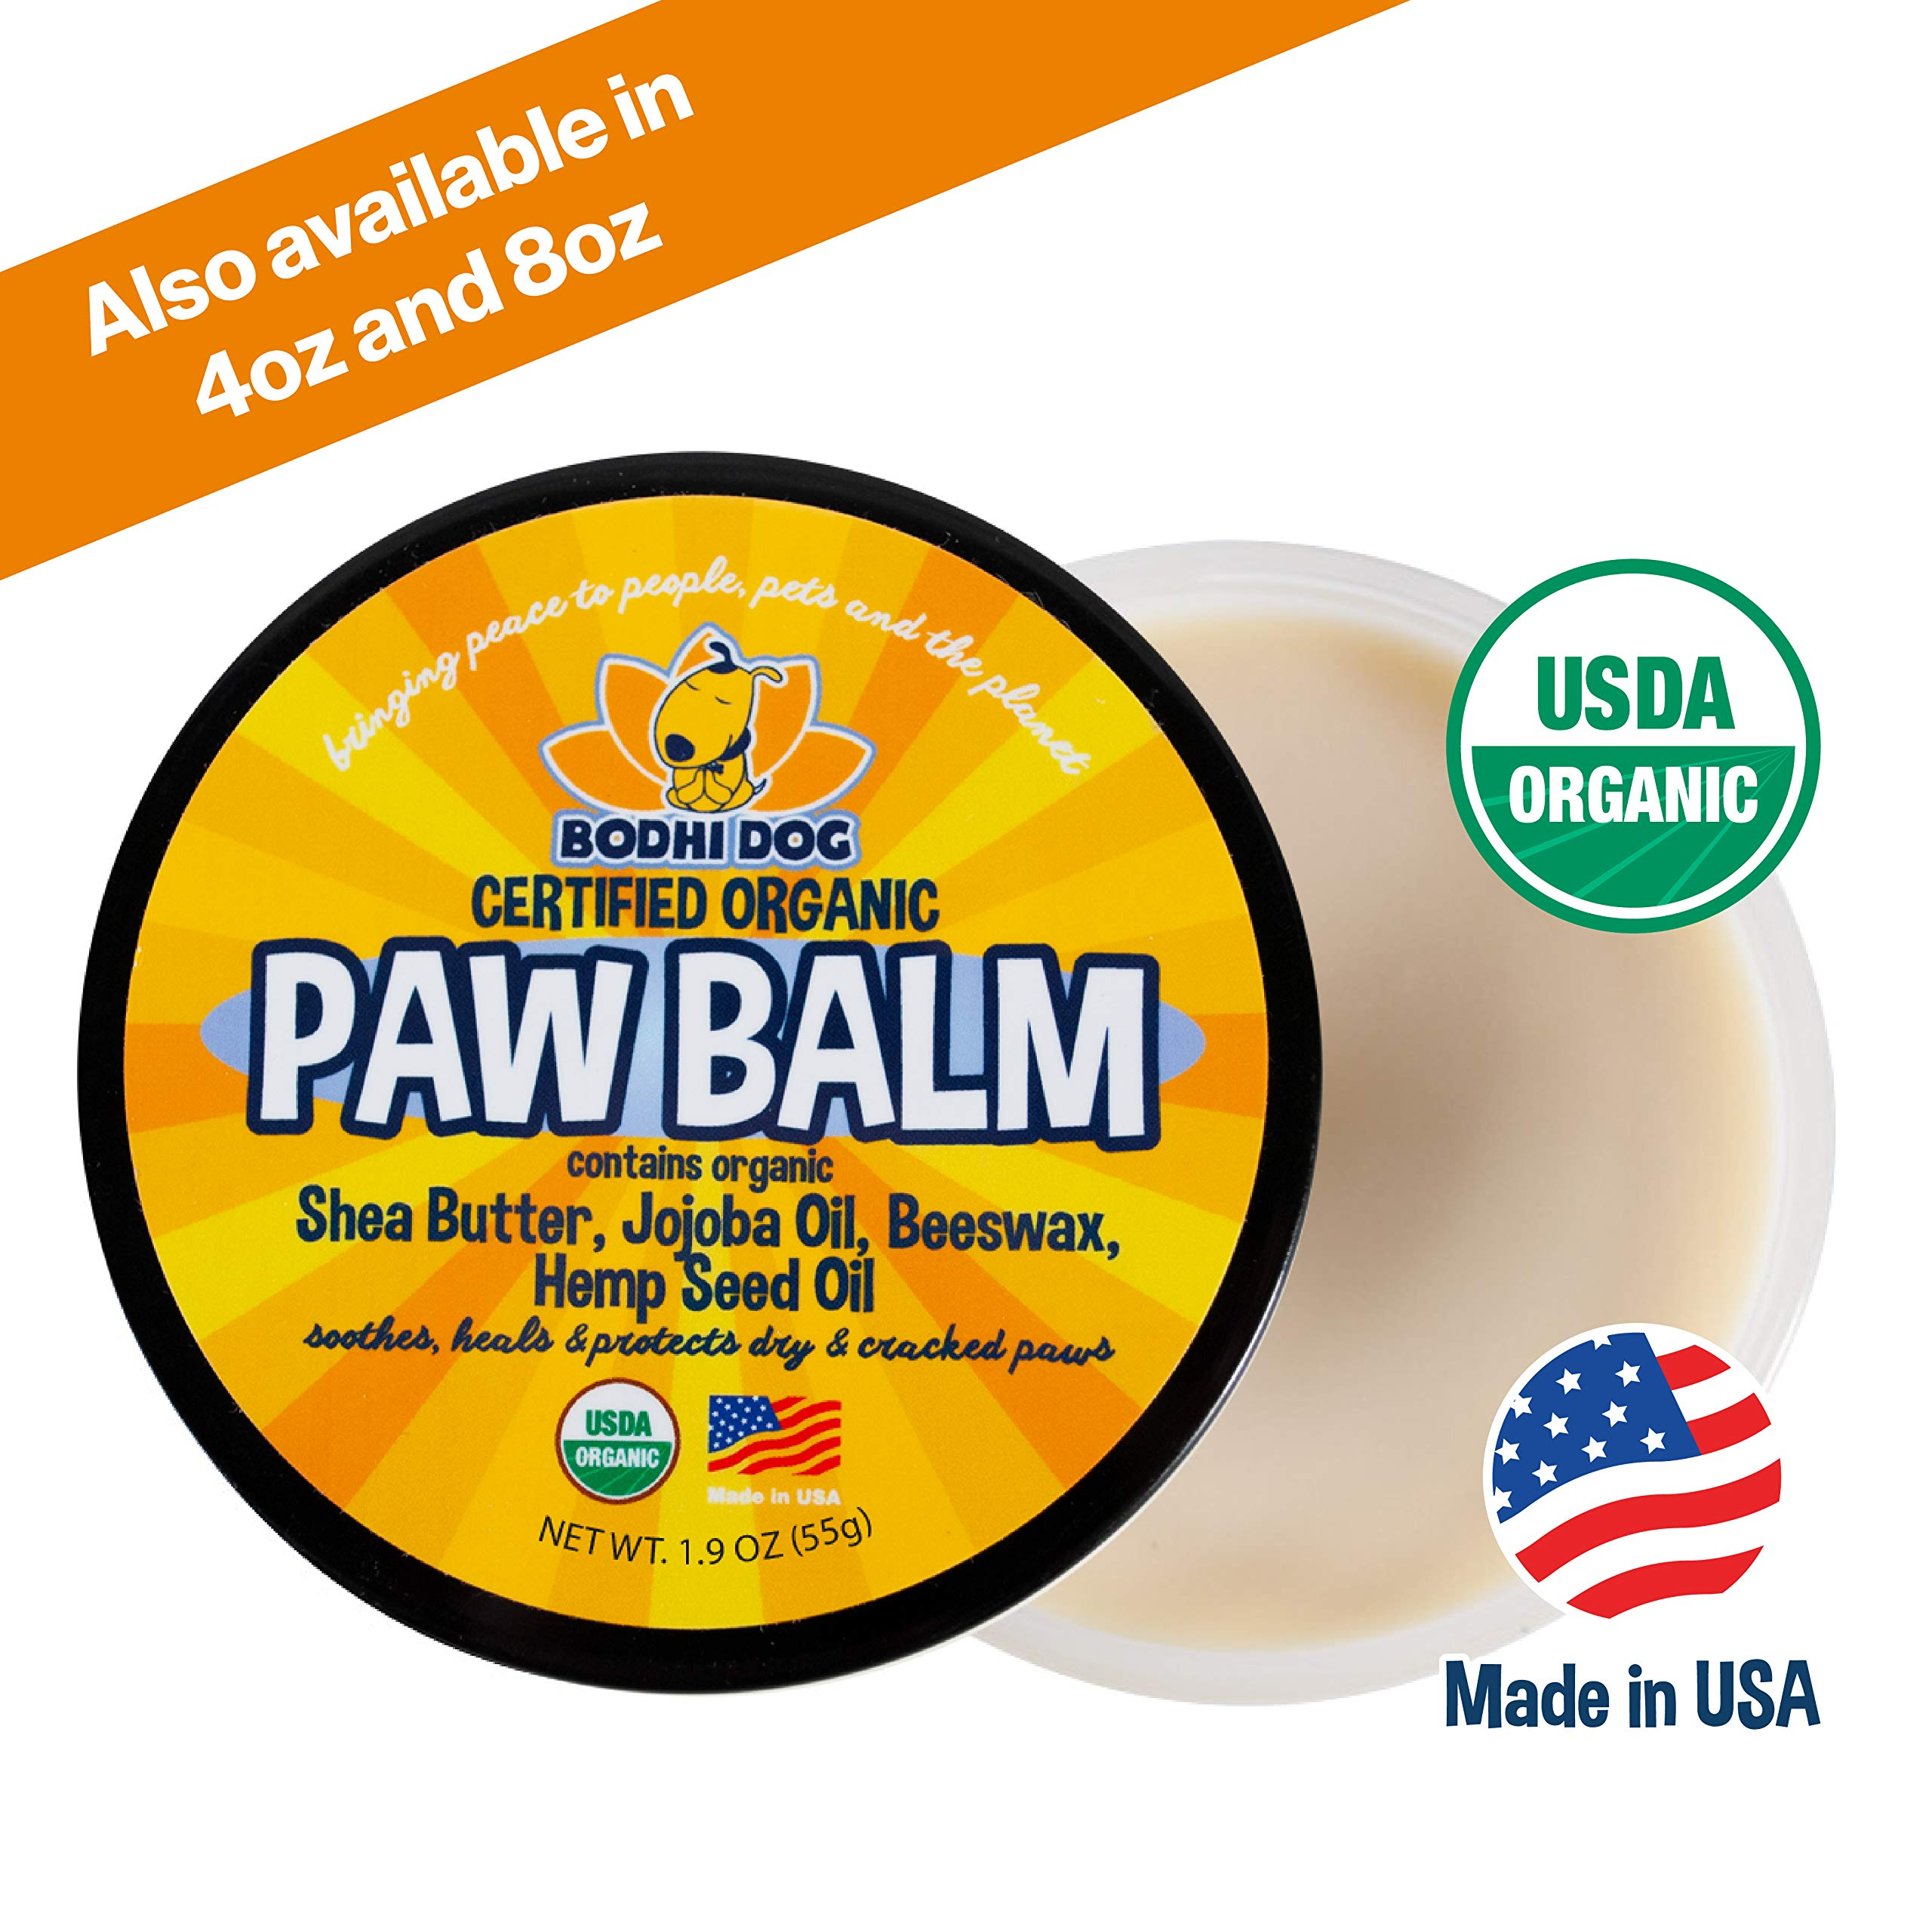 Organic Paw Balm for Dogs & Cats | All Natural Soothing & Healing for Dry Cracking Rough Pet Skin | Protect & Restore Cracked and Chapped Dog Paws & Pads | Better Than Paw Wax 2oz by Bodhi Dog